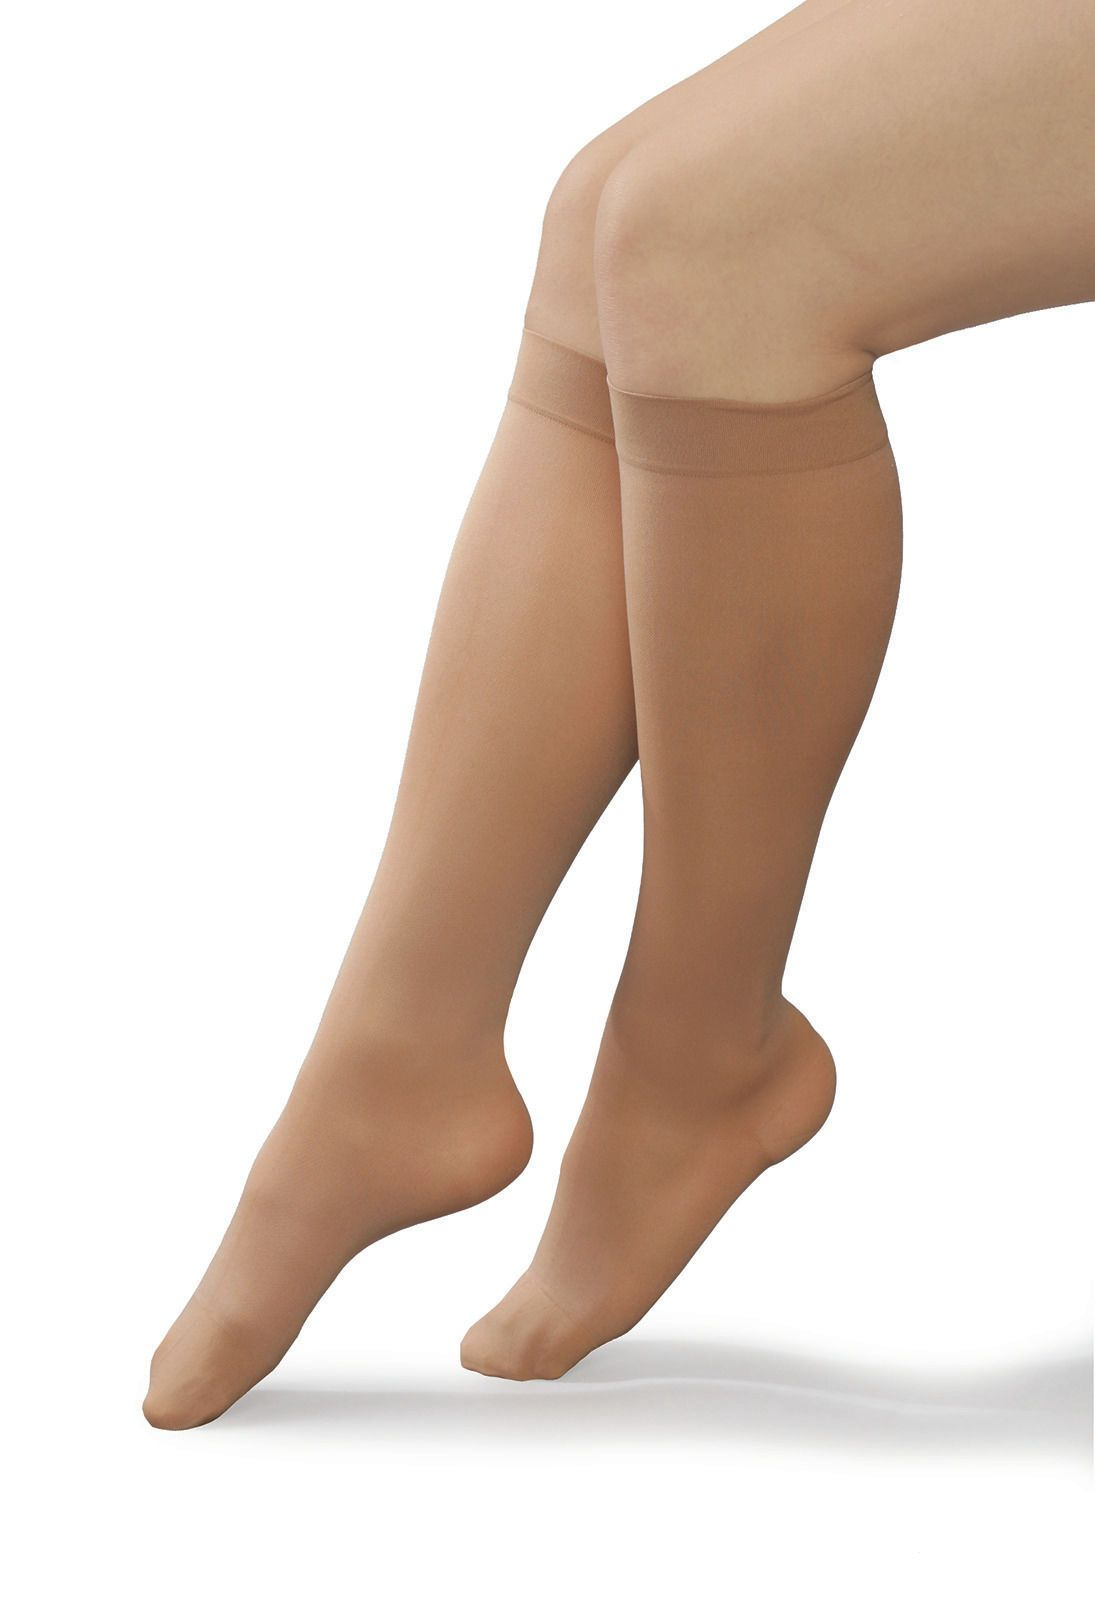 af143ba4b2 $12.55 - Knee High 23-32Mmhg Compression Support Stocking,Open Or Closed  Toe /